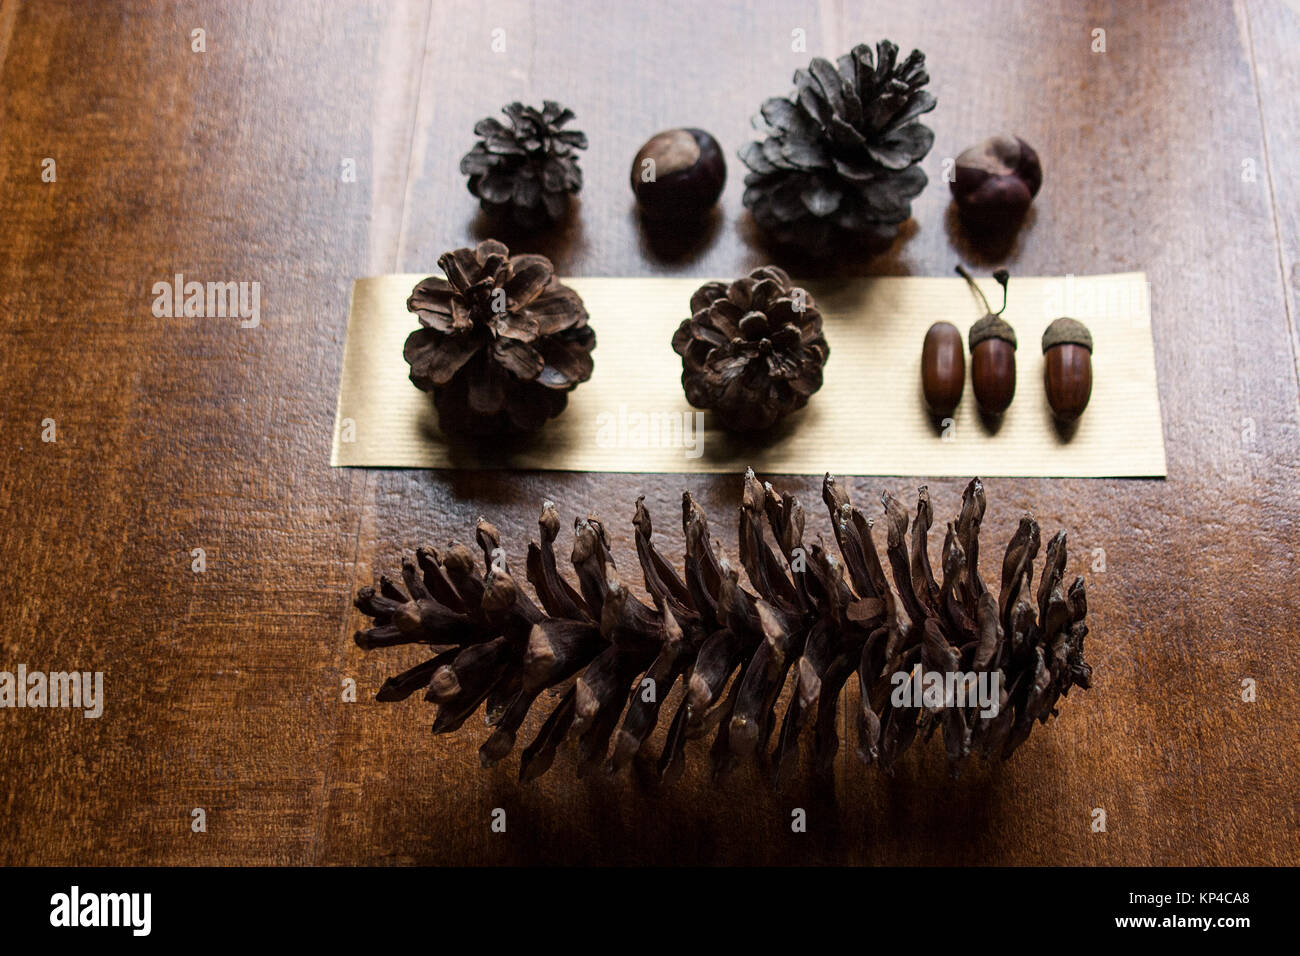 Pinecones on table - Stock Image